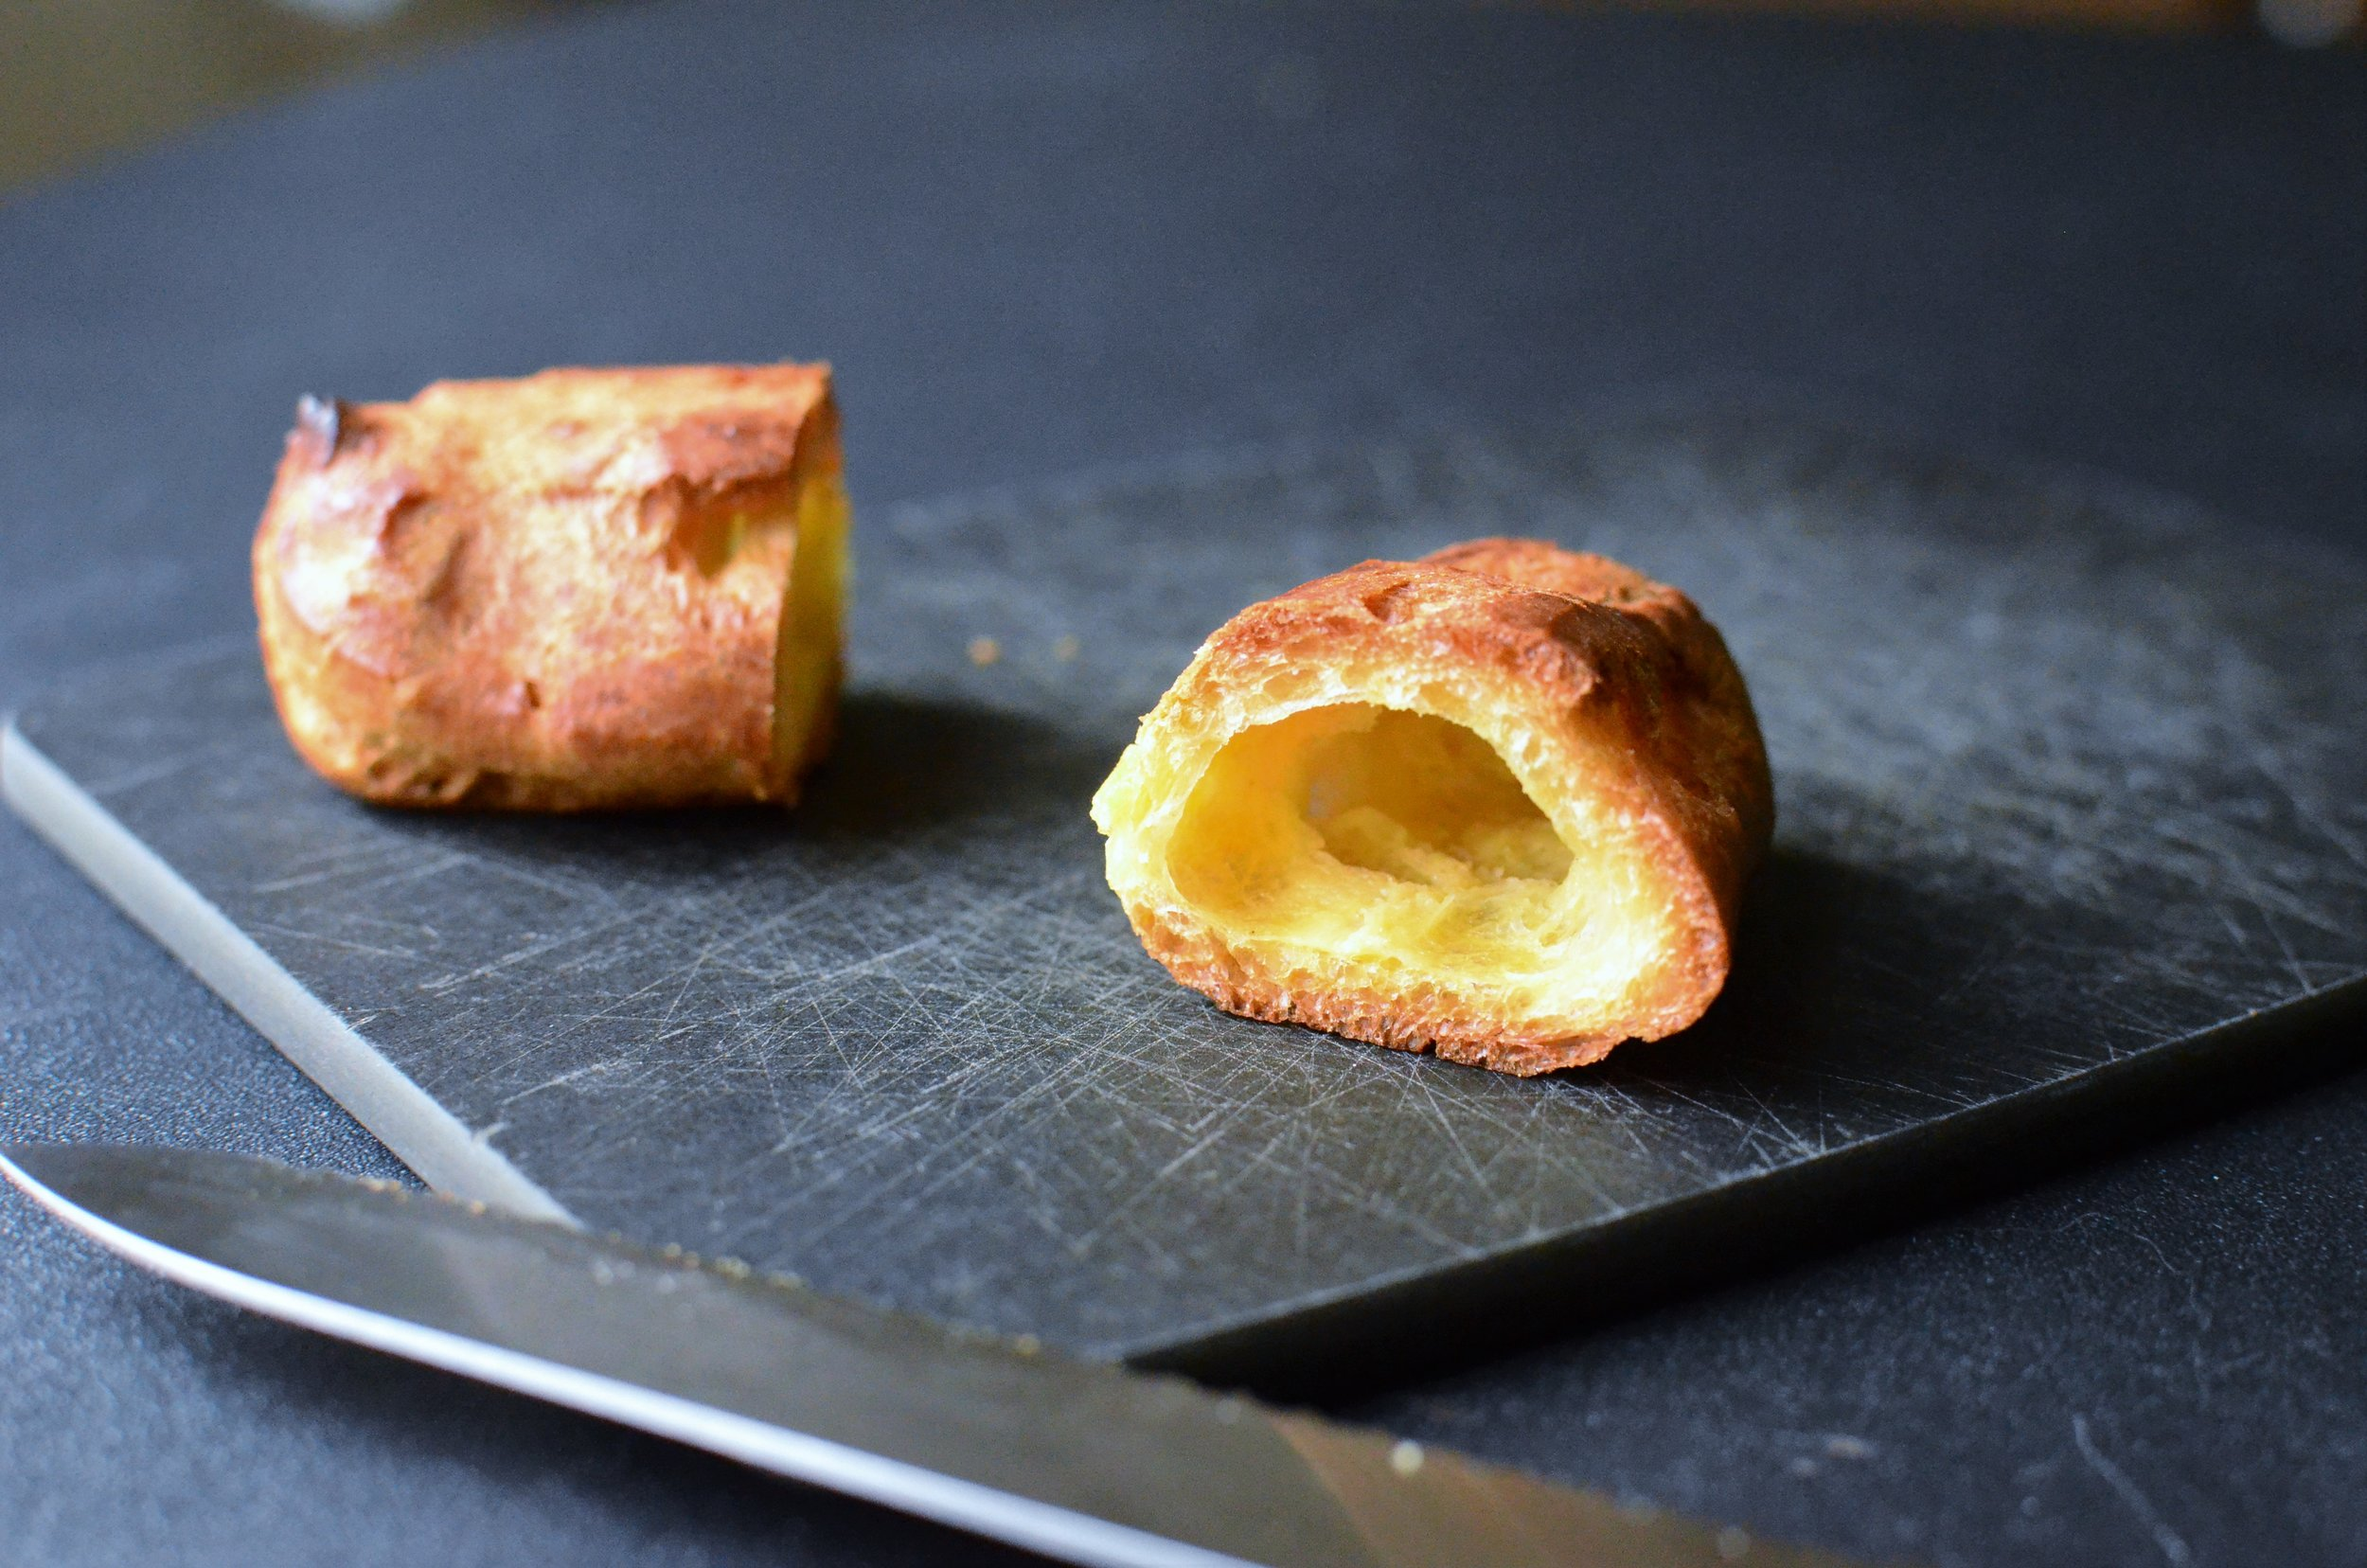 how to make eclairs from scratch. how to make pate a choux from scratch. how to make choux paste from scratch. RECIPE AND HOW-TO PHOTOS